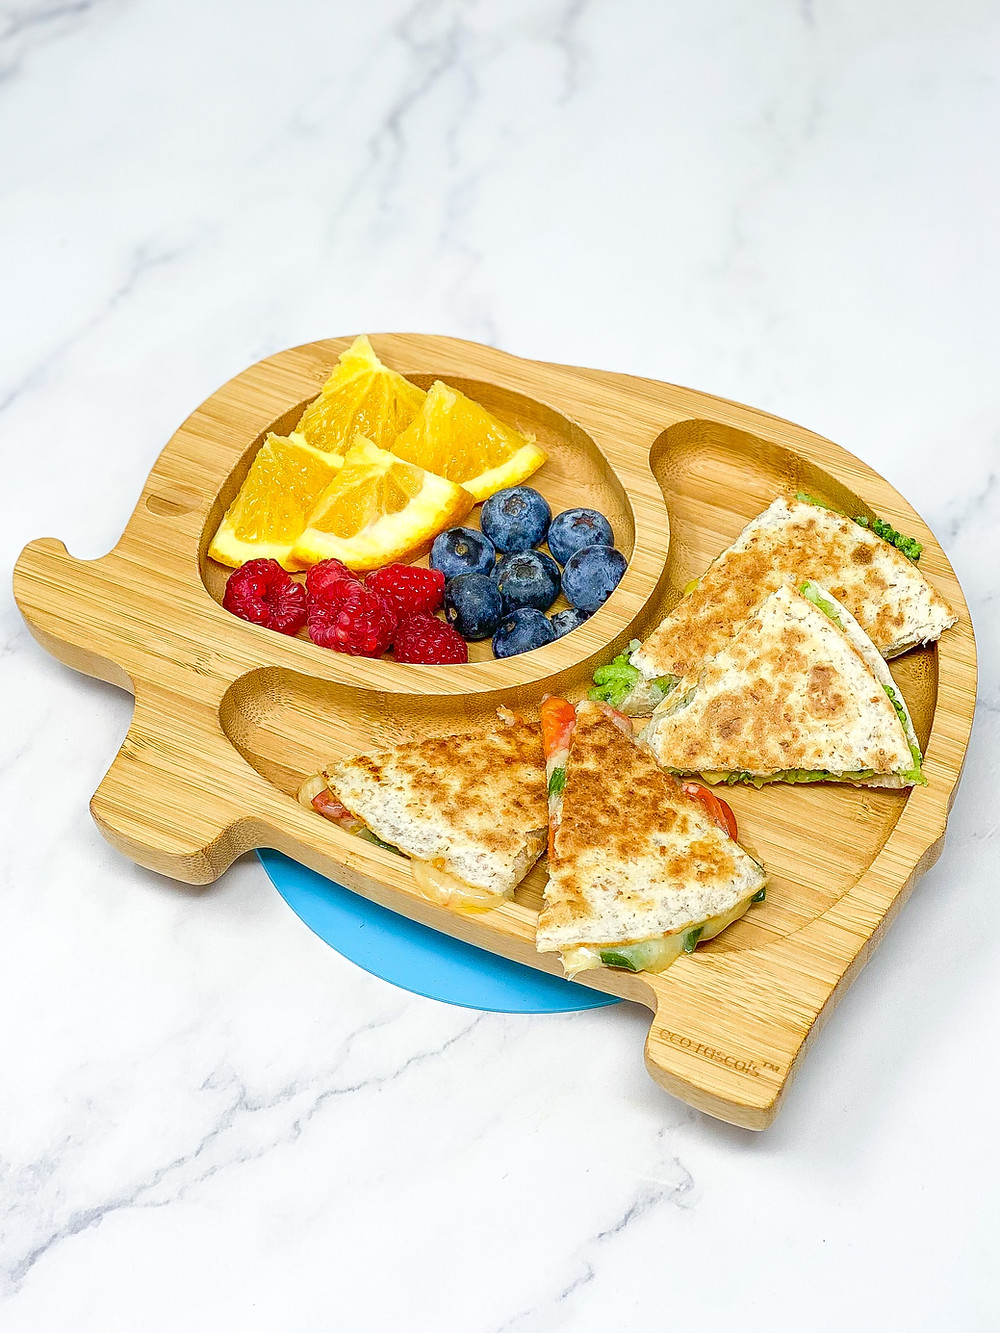 Broccoli Quesadilla served in bamboo blw kids plate of eco rascals